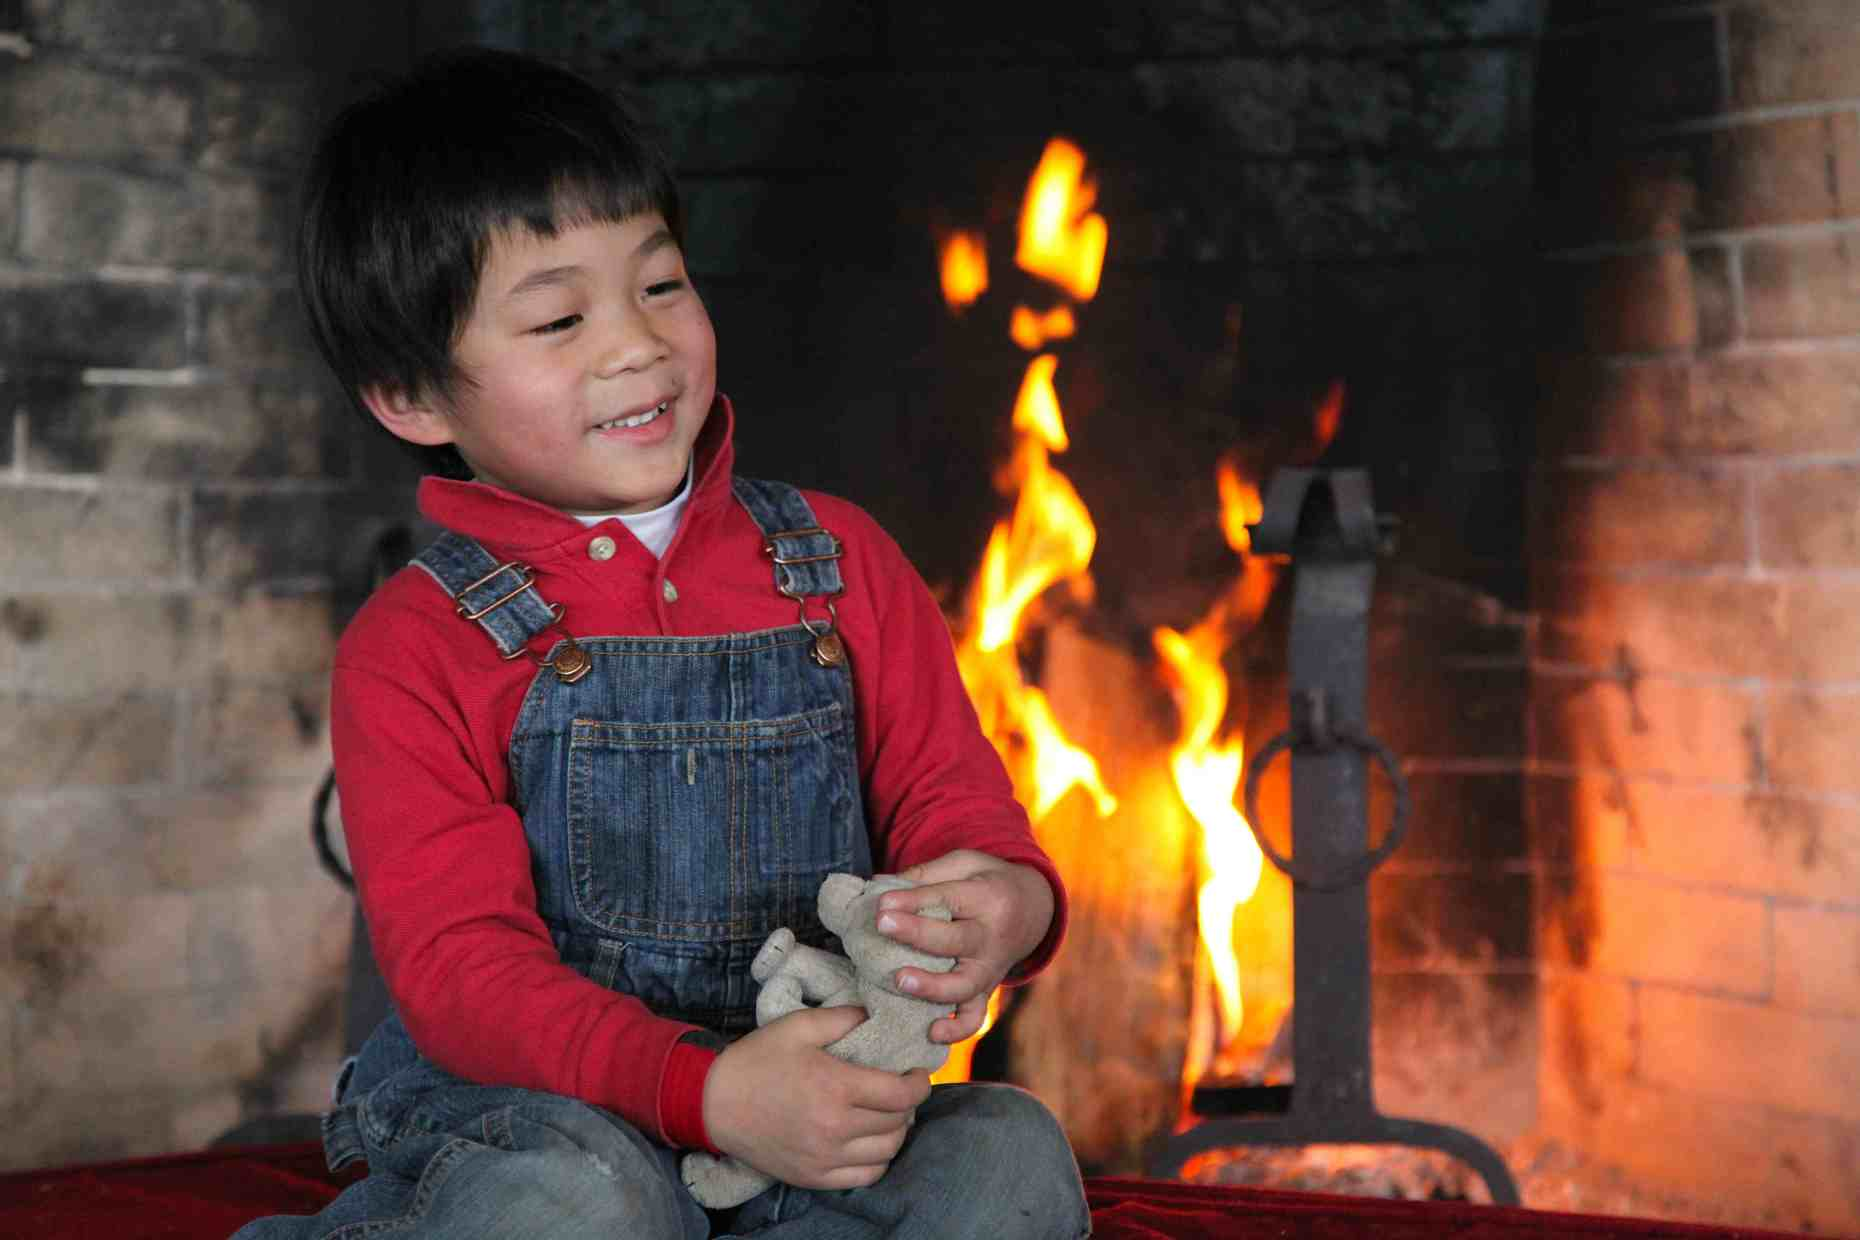 Our warm winter fire by home-made fire starters brings smiles.